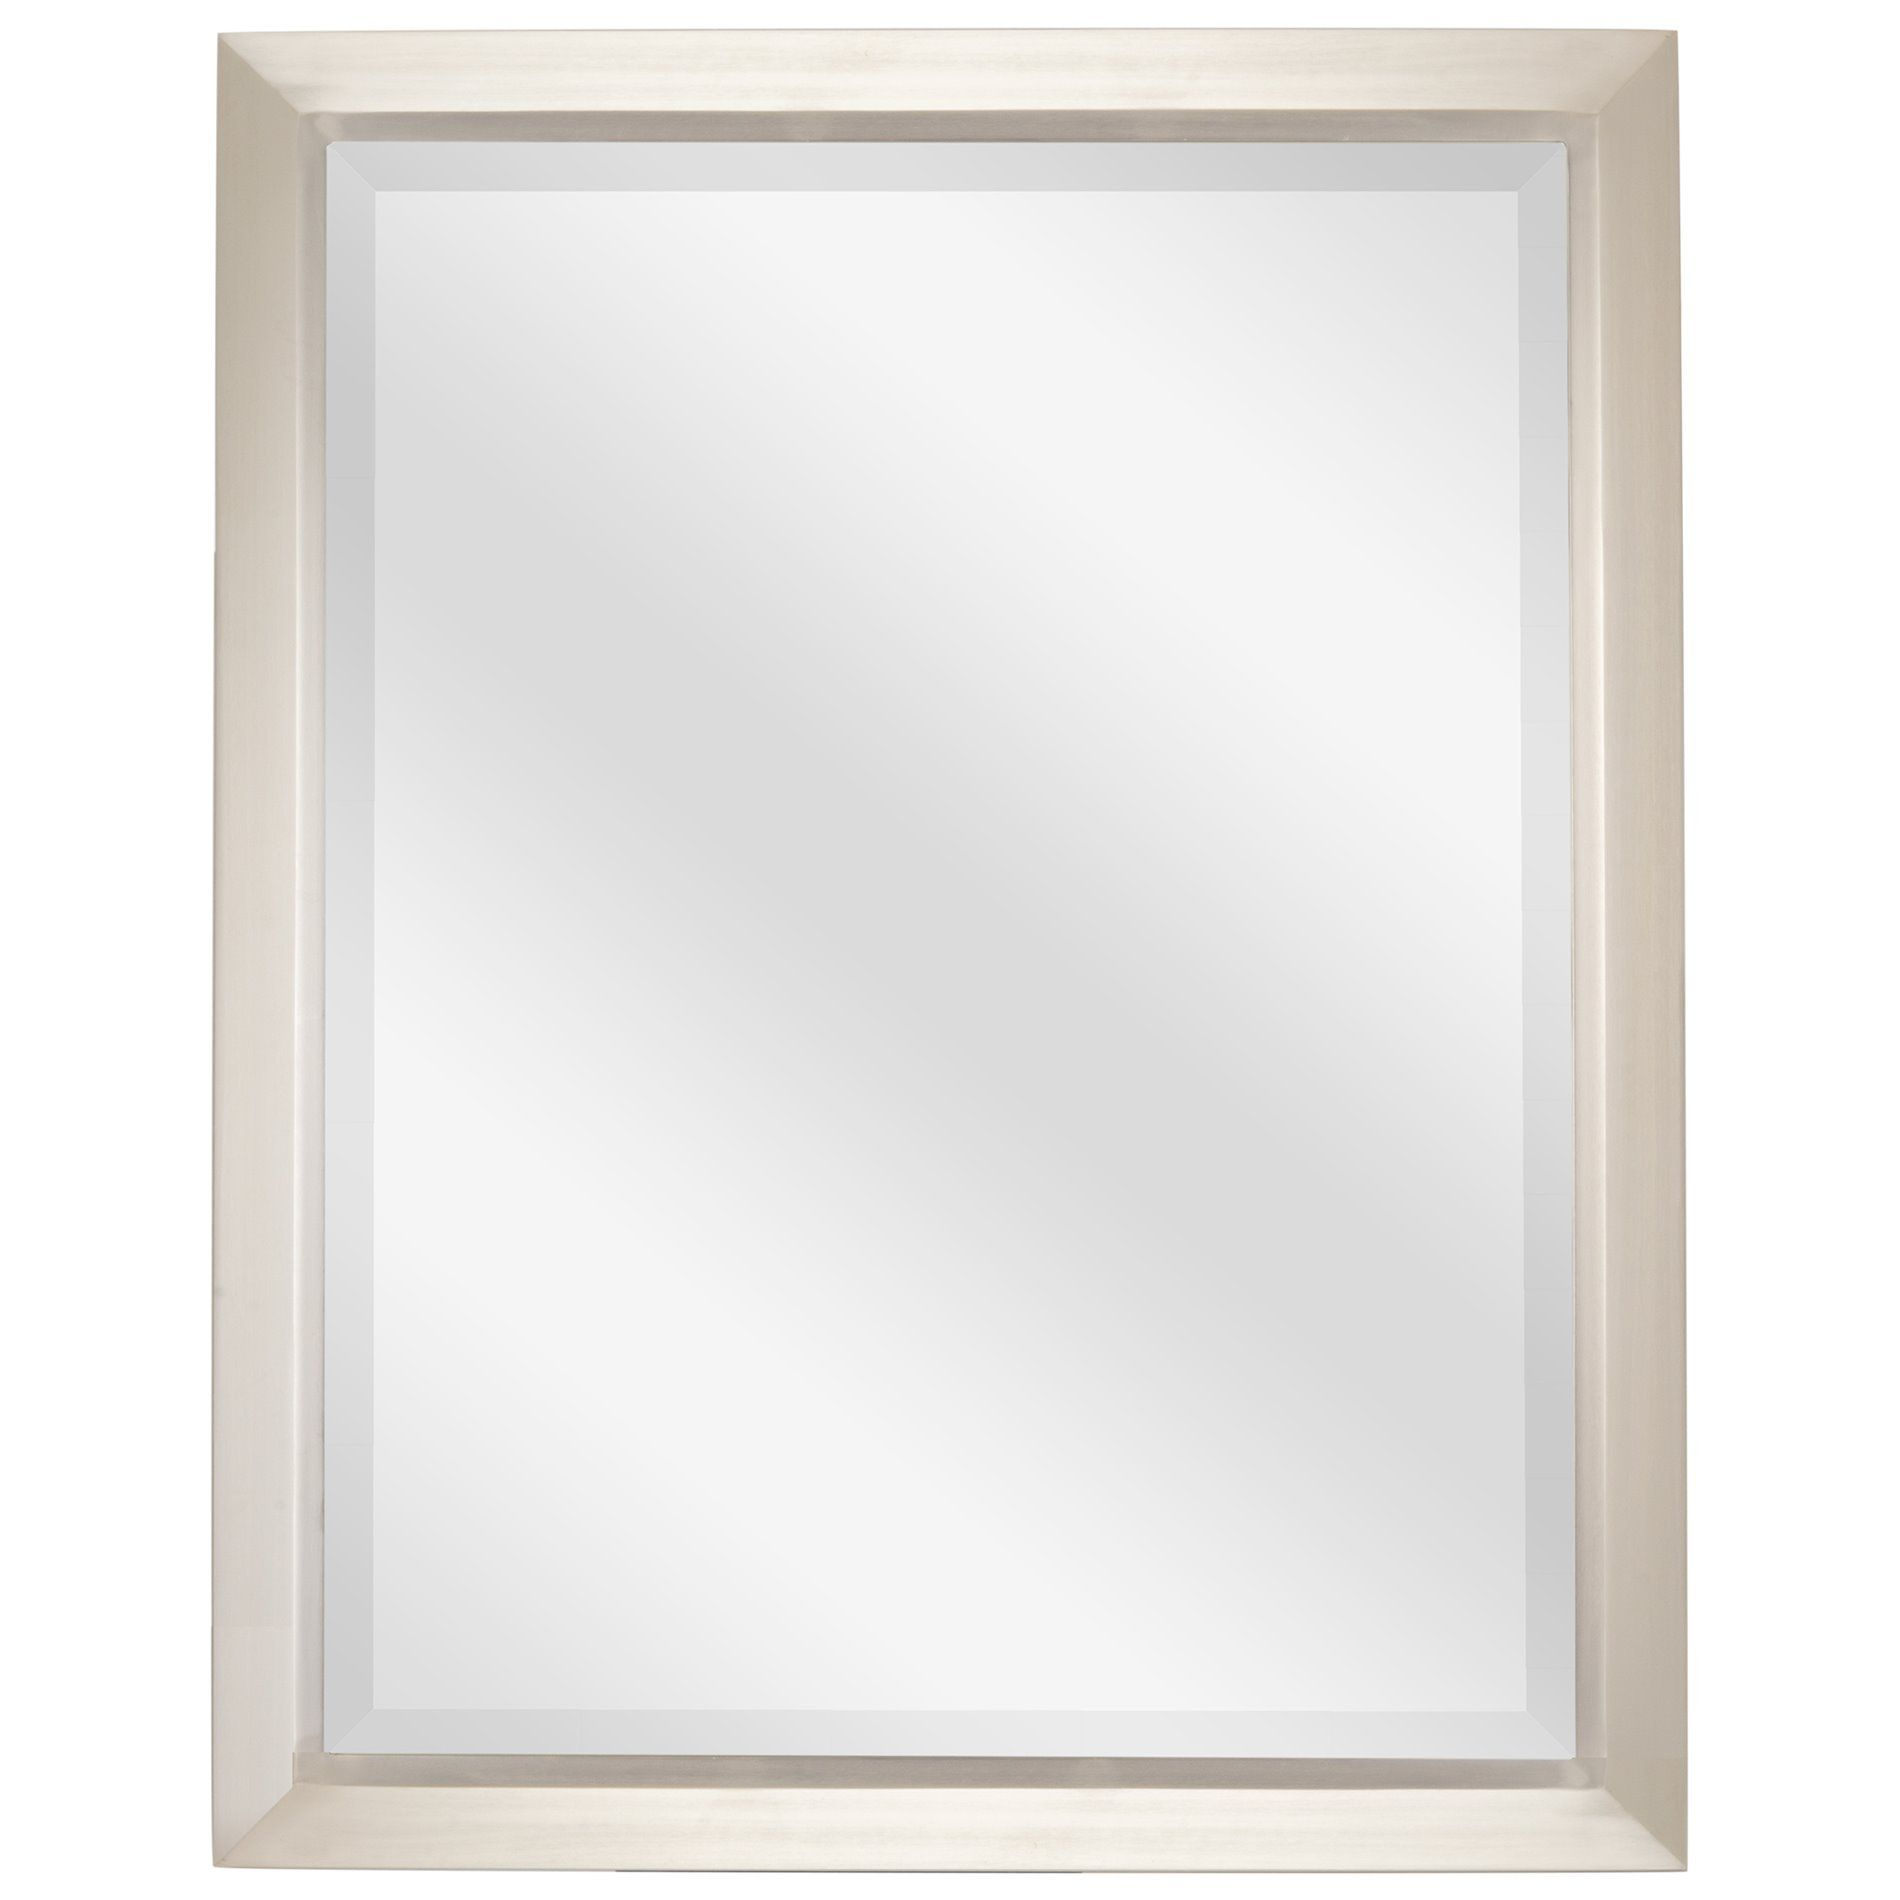 Decorative Brushed Nickel Mirror Revel Madison 30